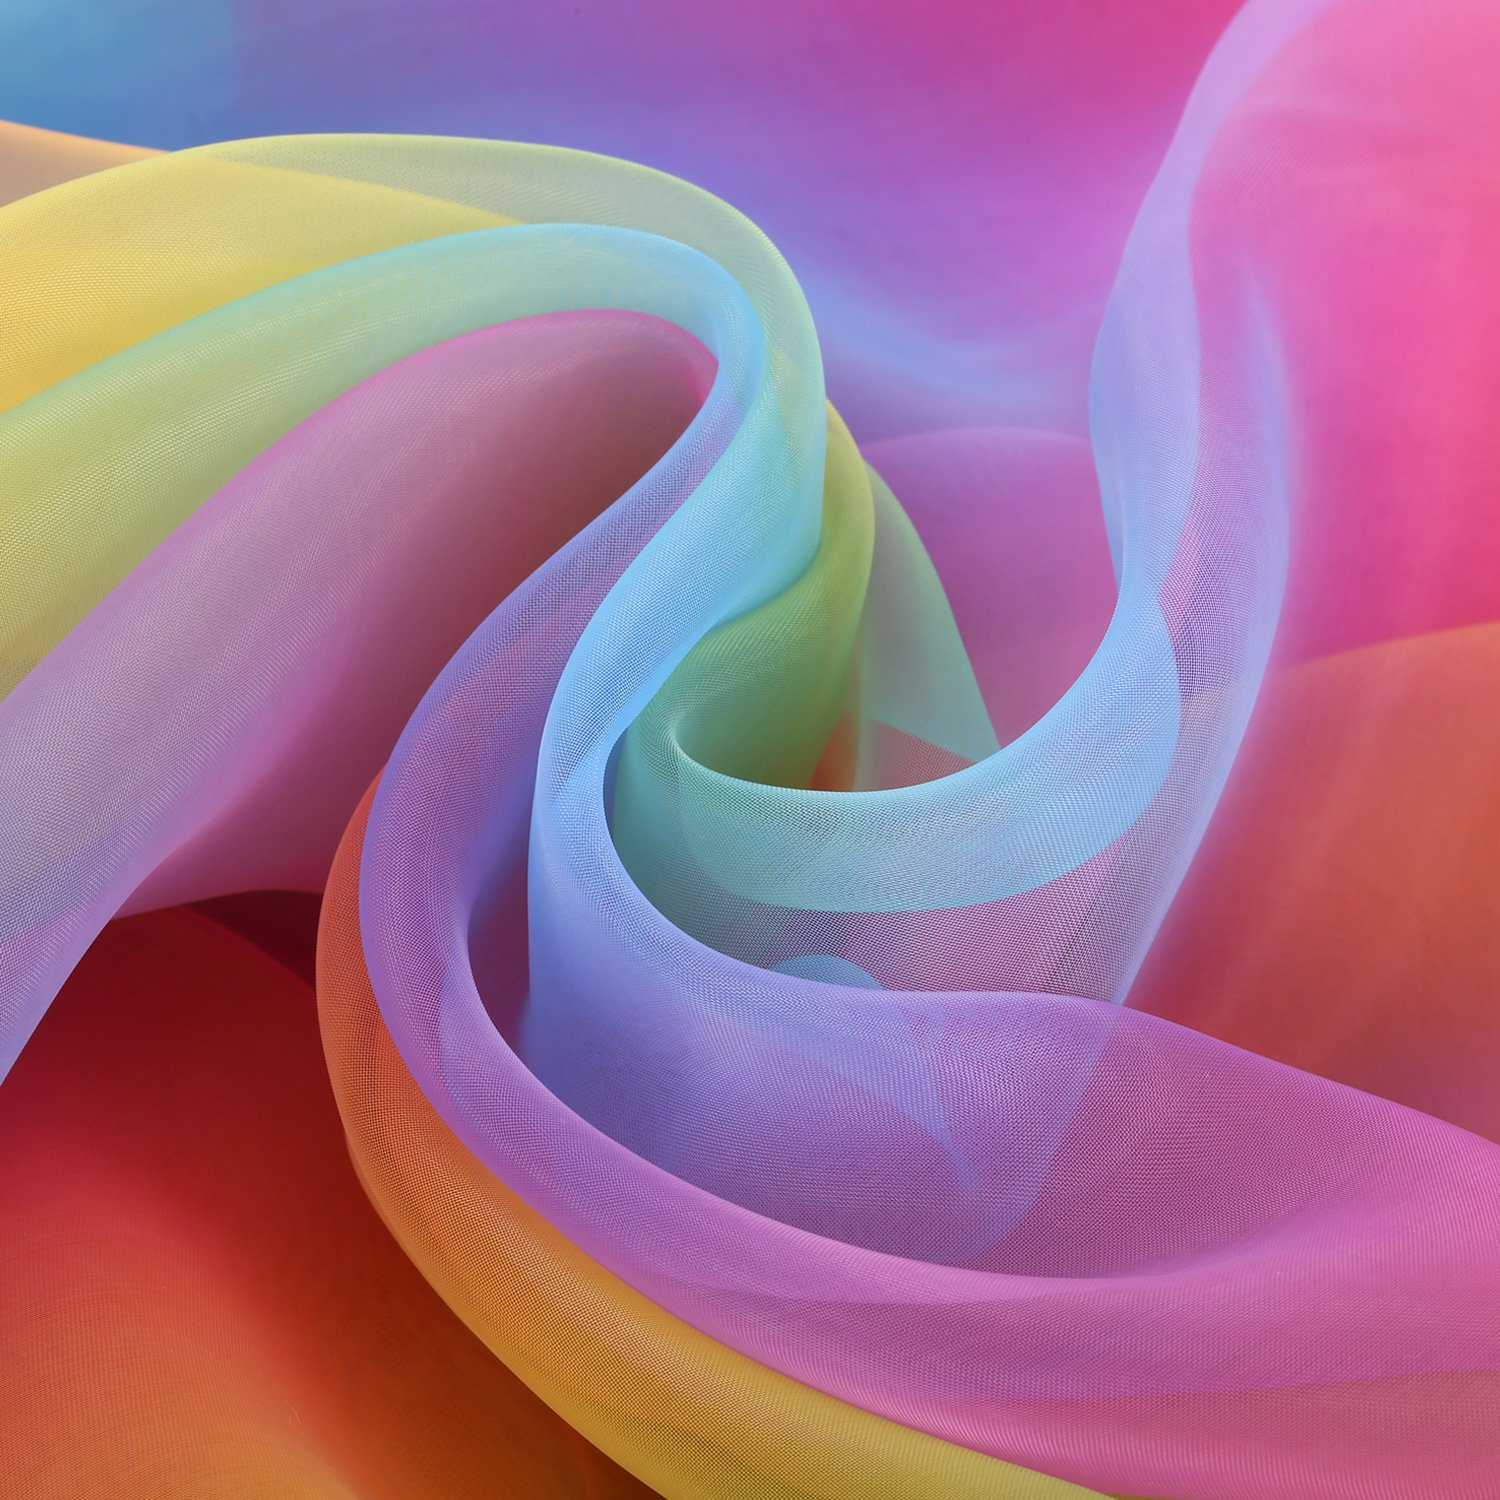 BBTO 16 Feet 54 inch Rainbow Organza Multicolored Voile Dress Fabric Fancy Costumes Decorations 4336912878